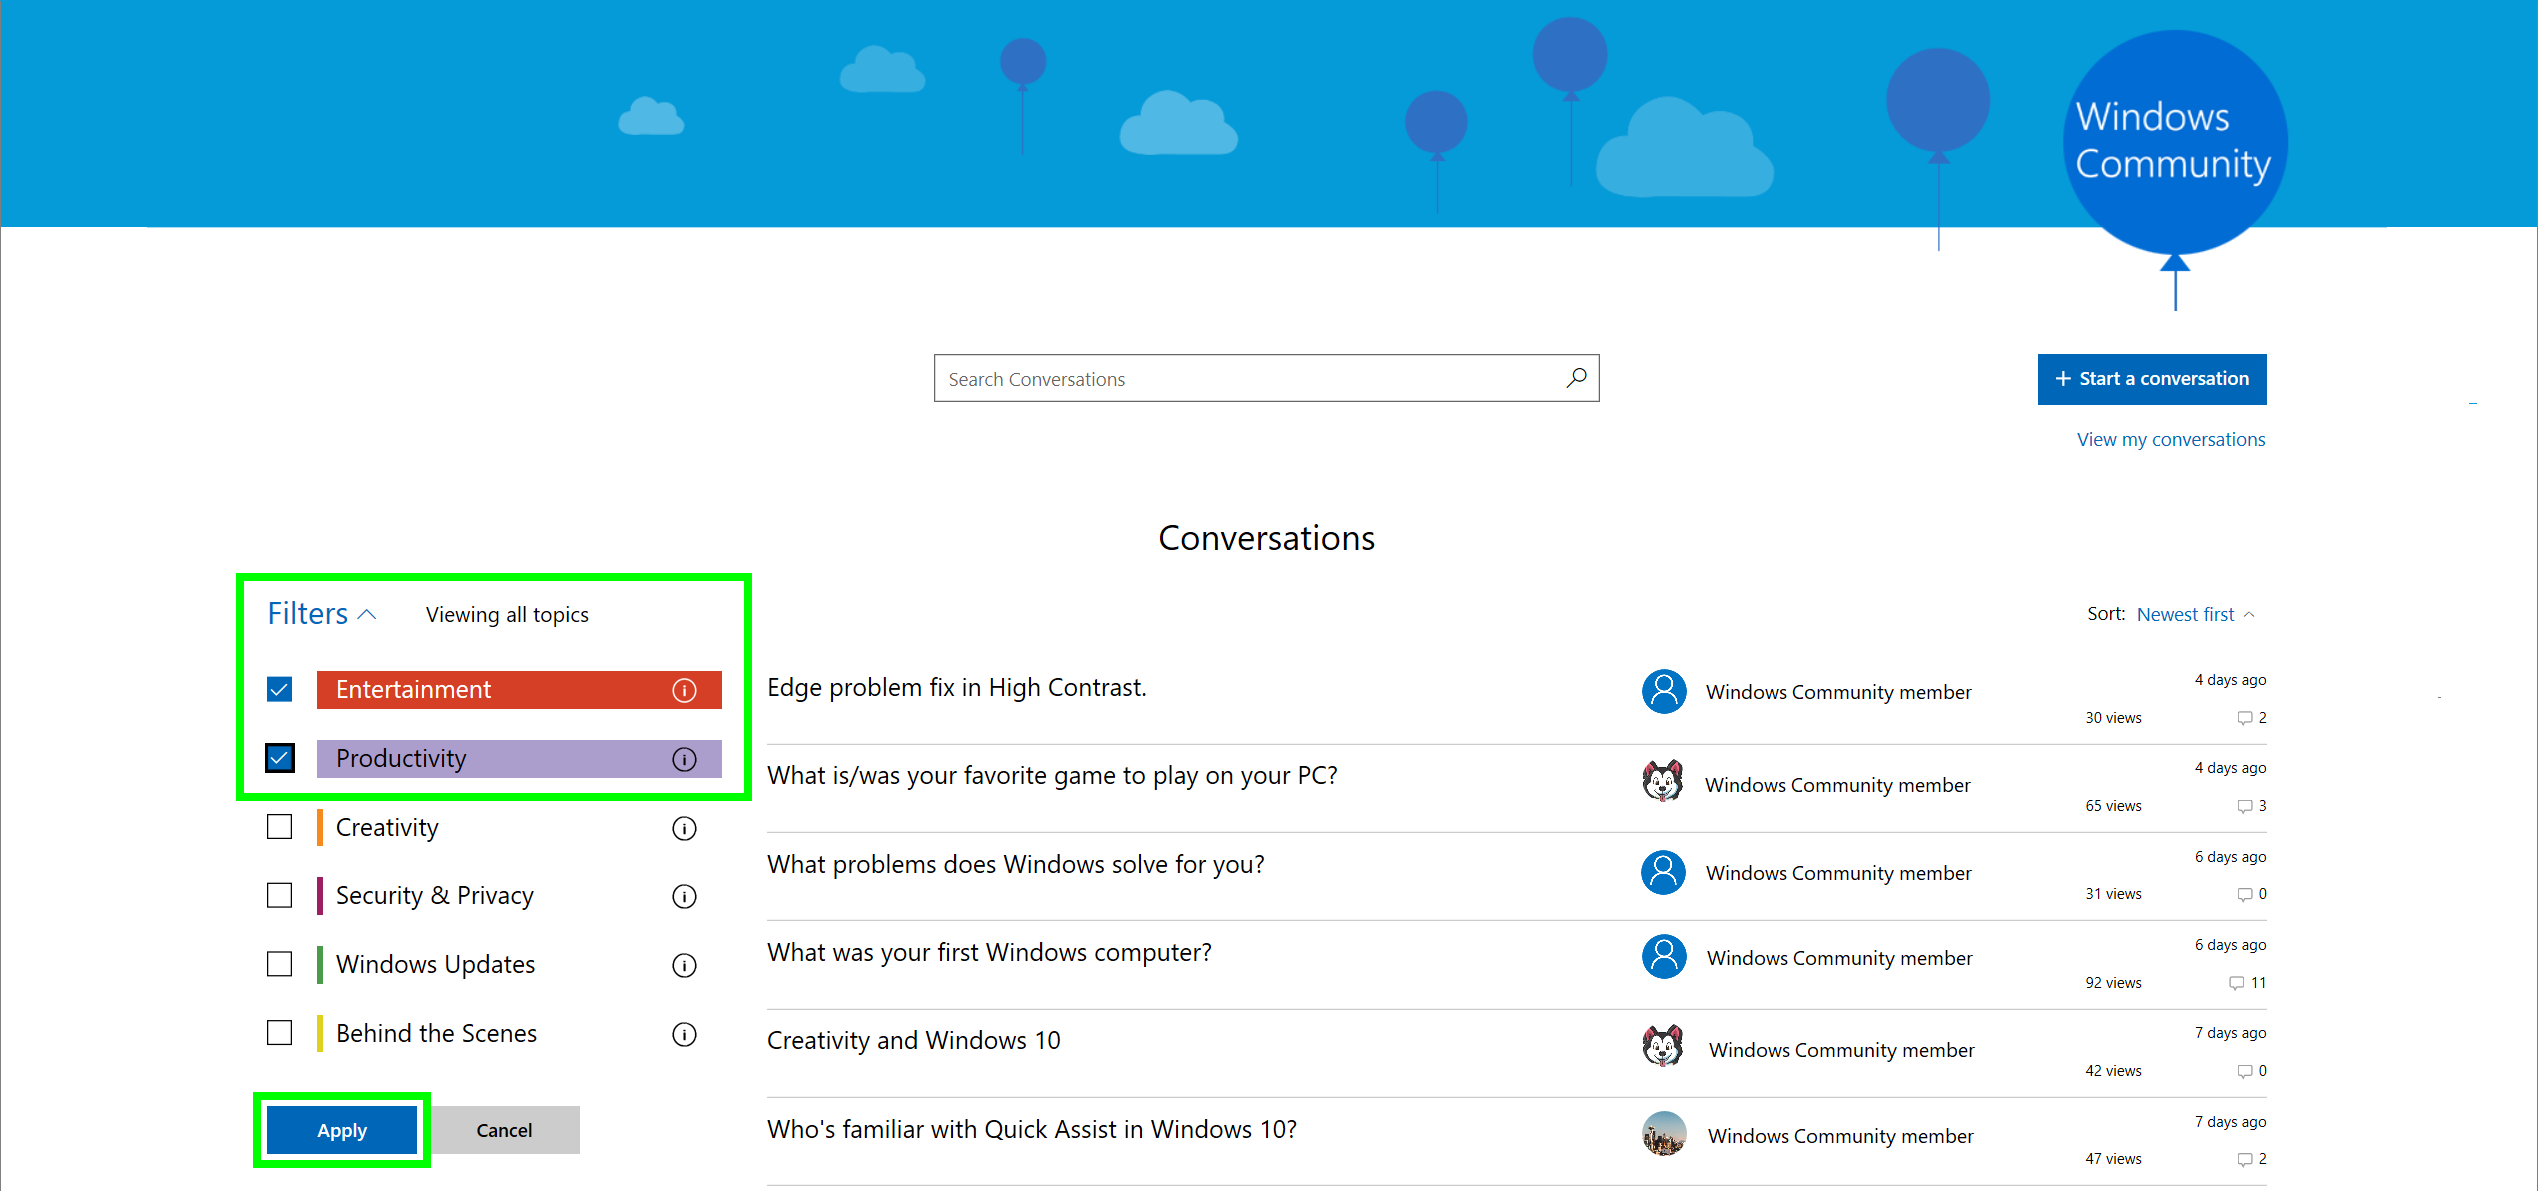 Screenshot of Windows Community Filter Conversations